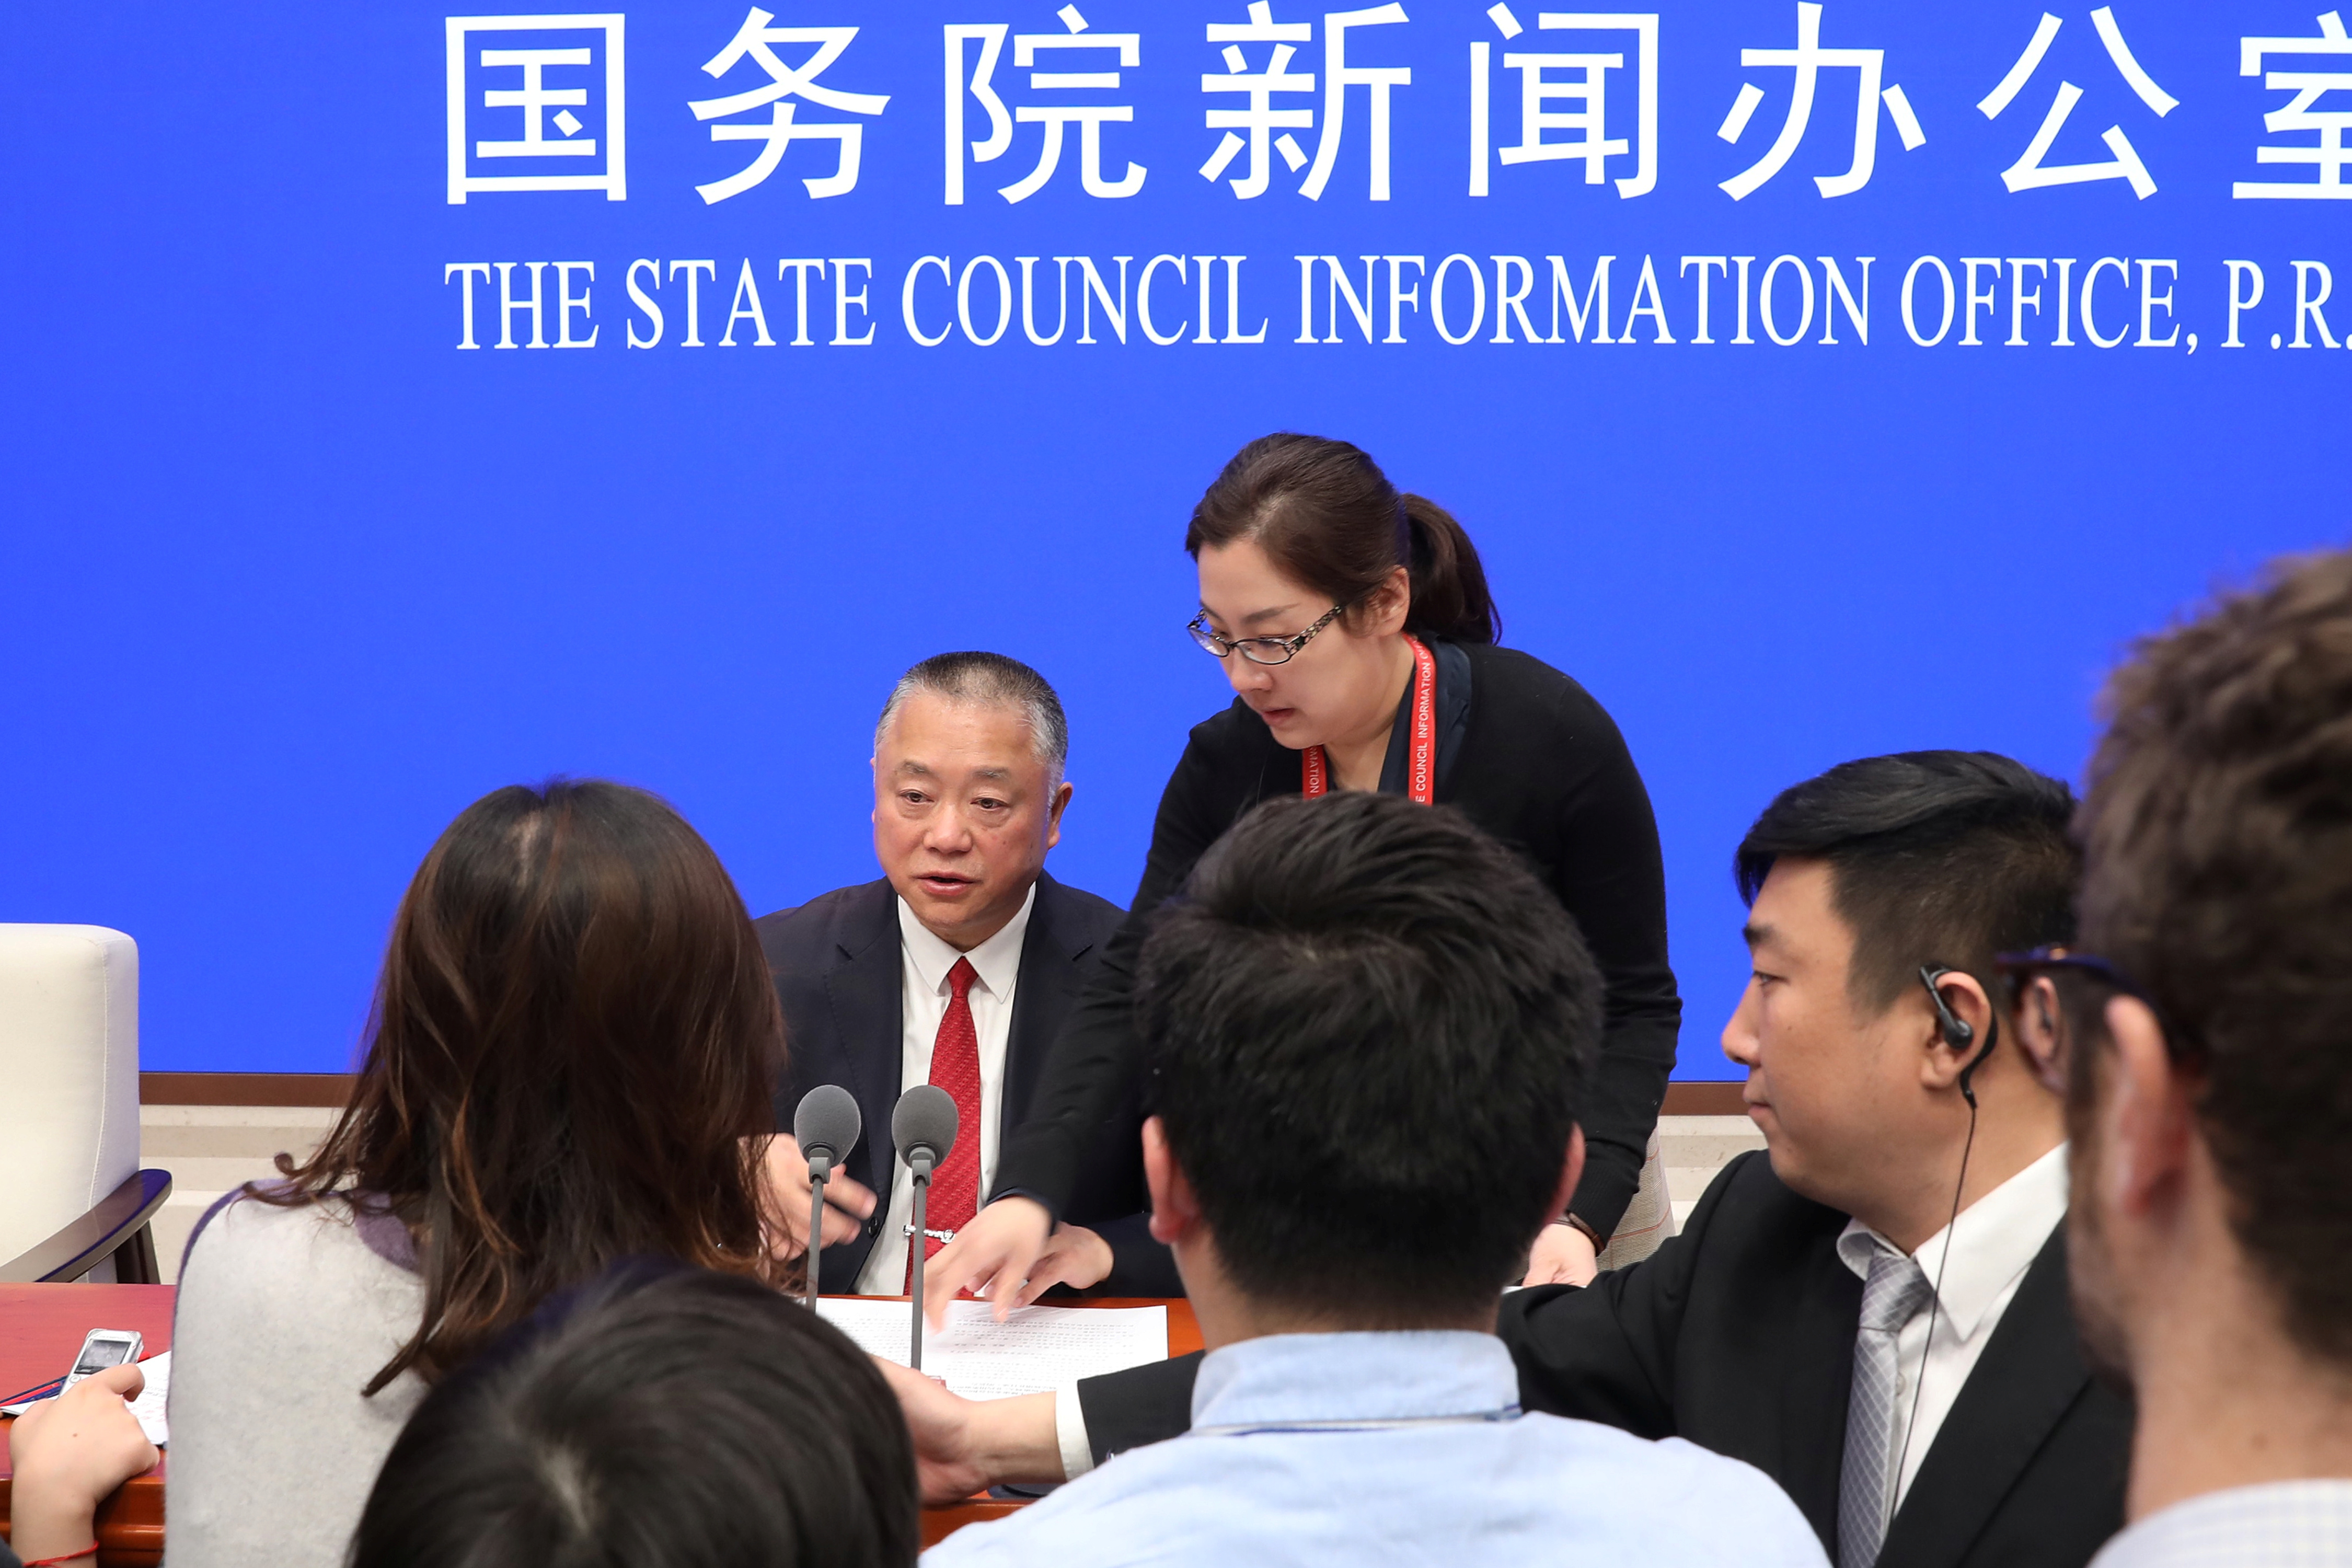 Liu Yuejin, Vice Commissioner of China National Narcotics Control Commission and Commissioner of Counterterrorism of Ministry of Public Security speaks to reporters after the news conference on fentanyl-related substances control, in Beijing, China April, 1, 2019. (REUTERS/Stringer)